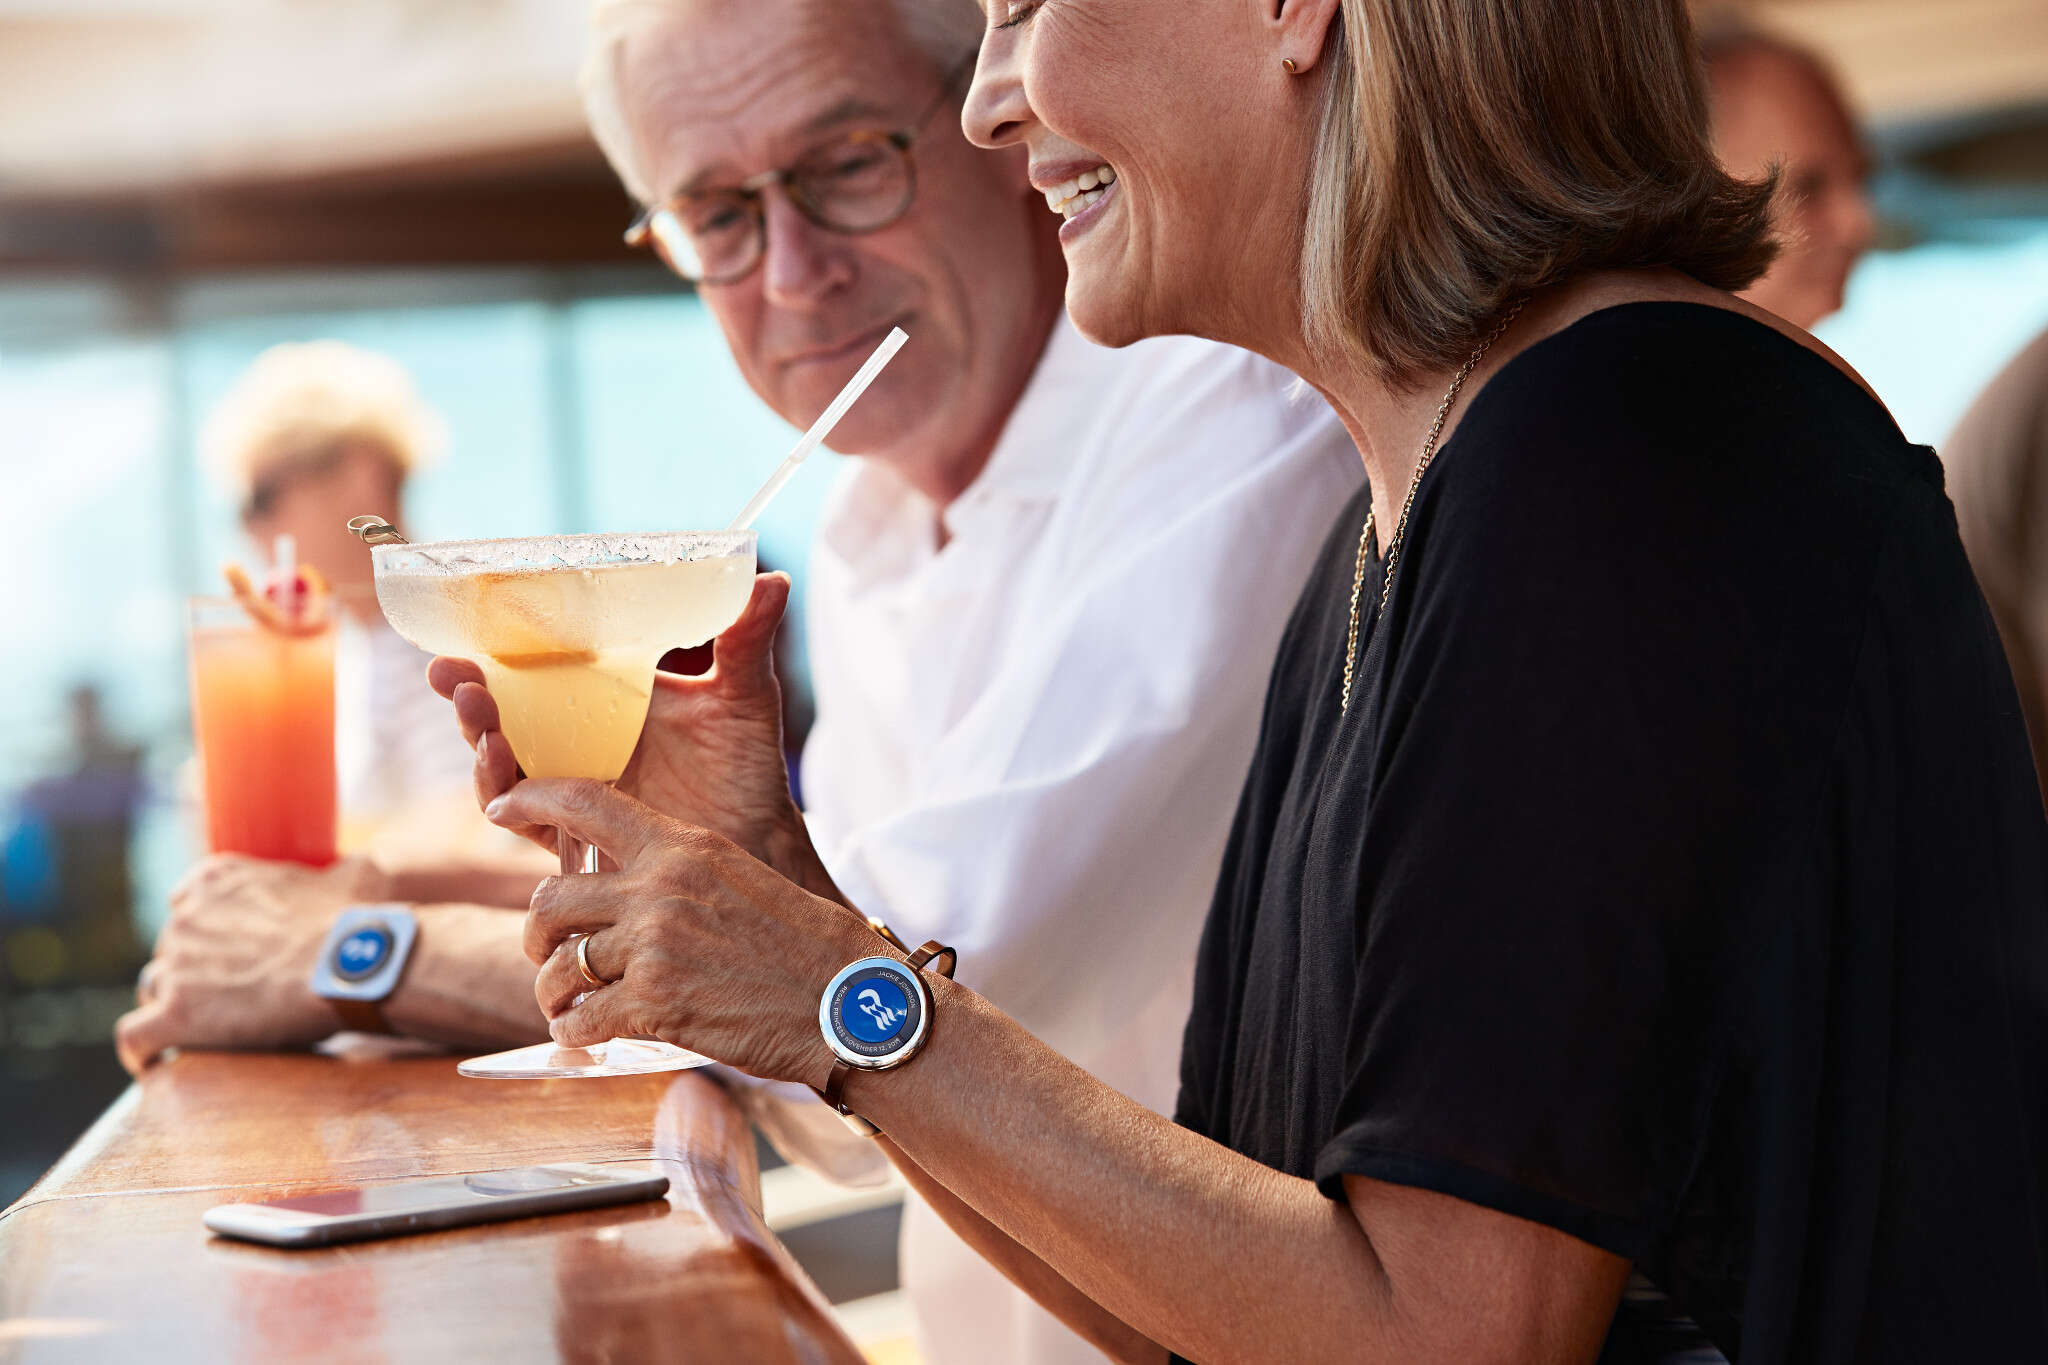 Exclusive Offer of up to $85 USD Onboard Credit per Stateroom